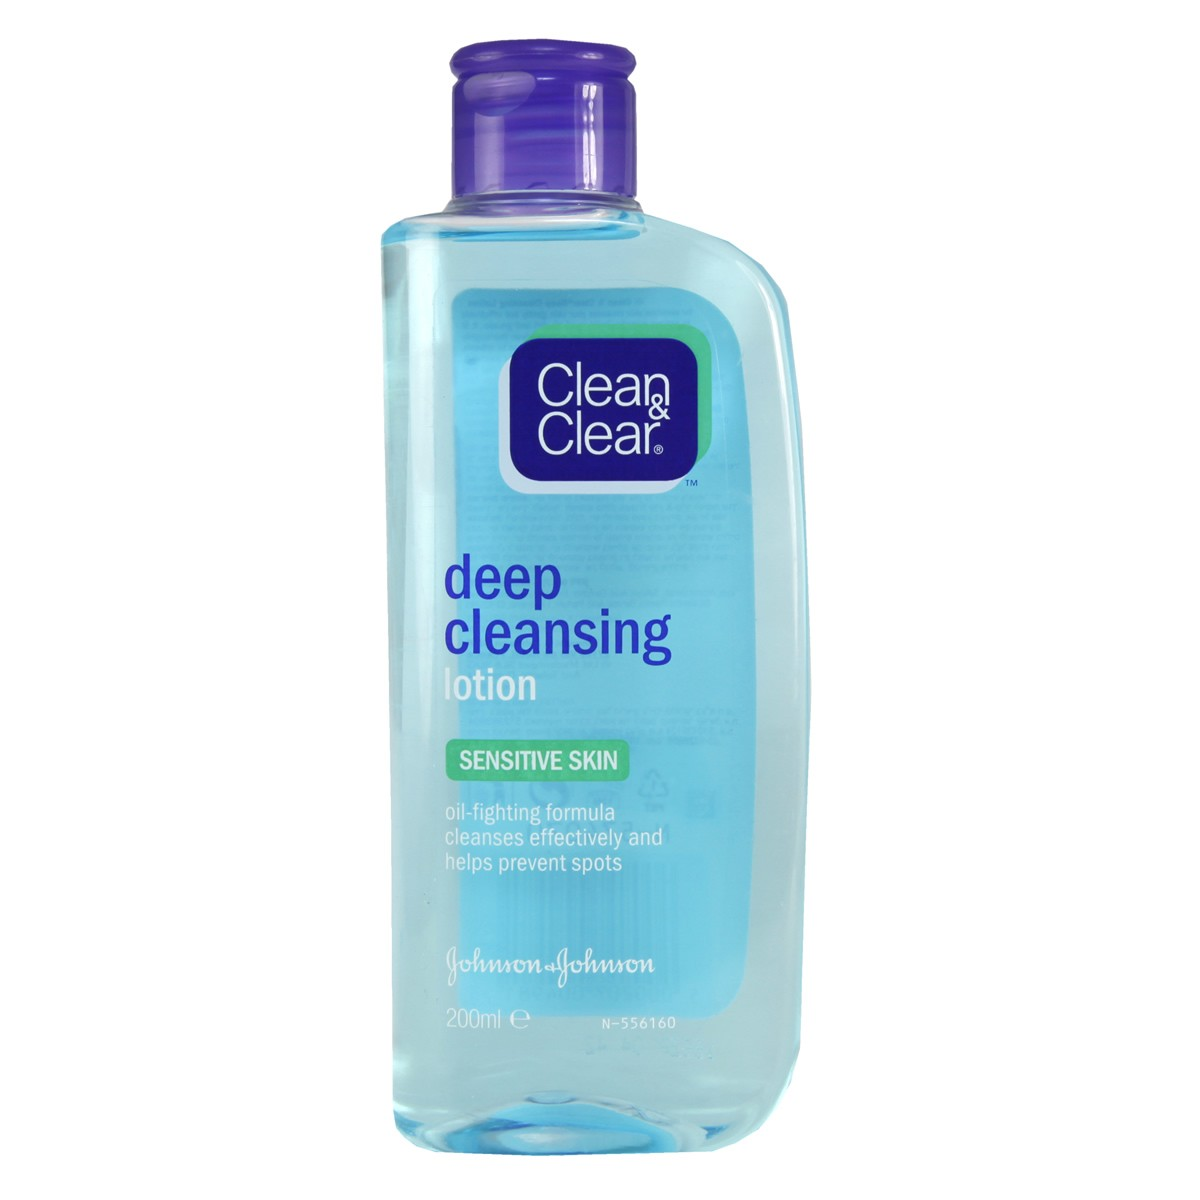 Clean & Clear Deep Cleansing Lotion - Sensitive Skin